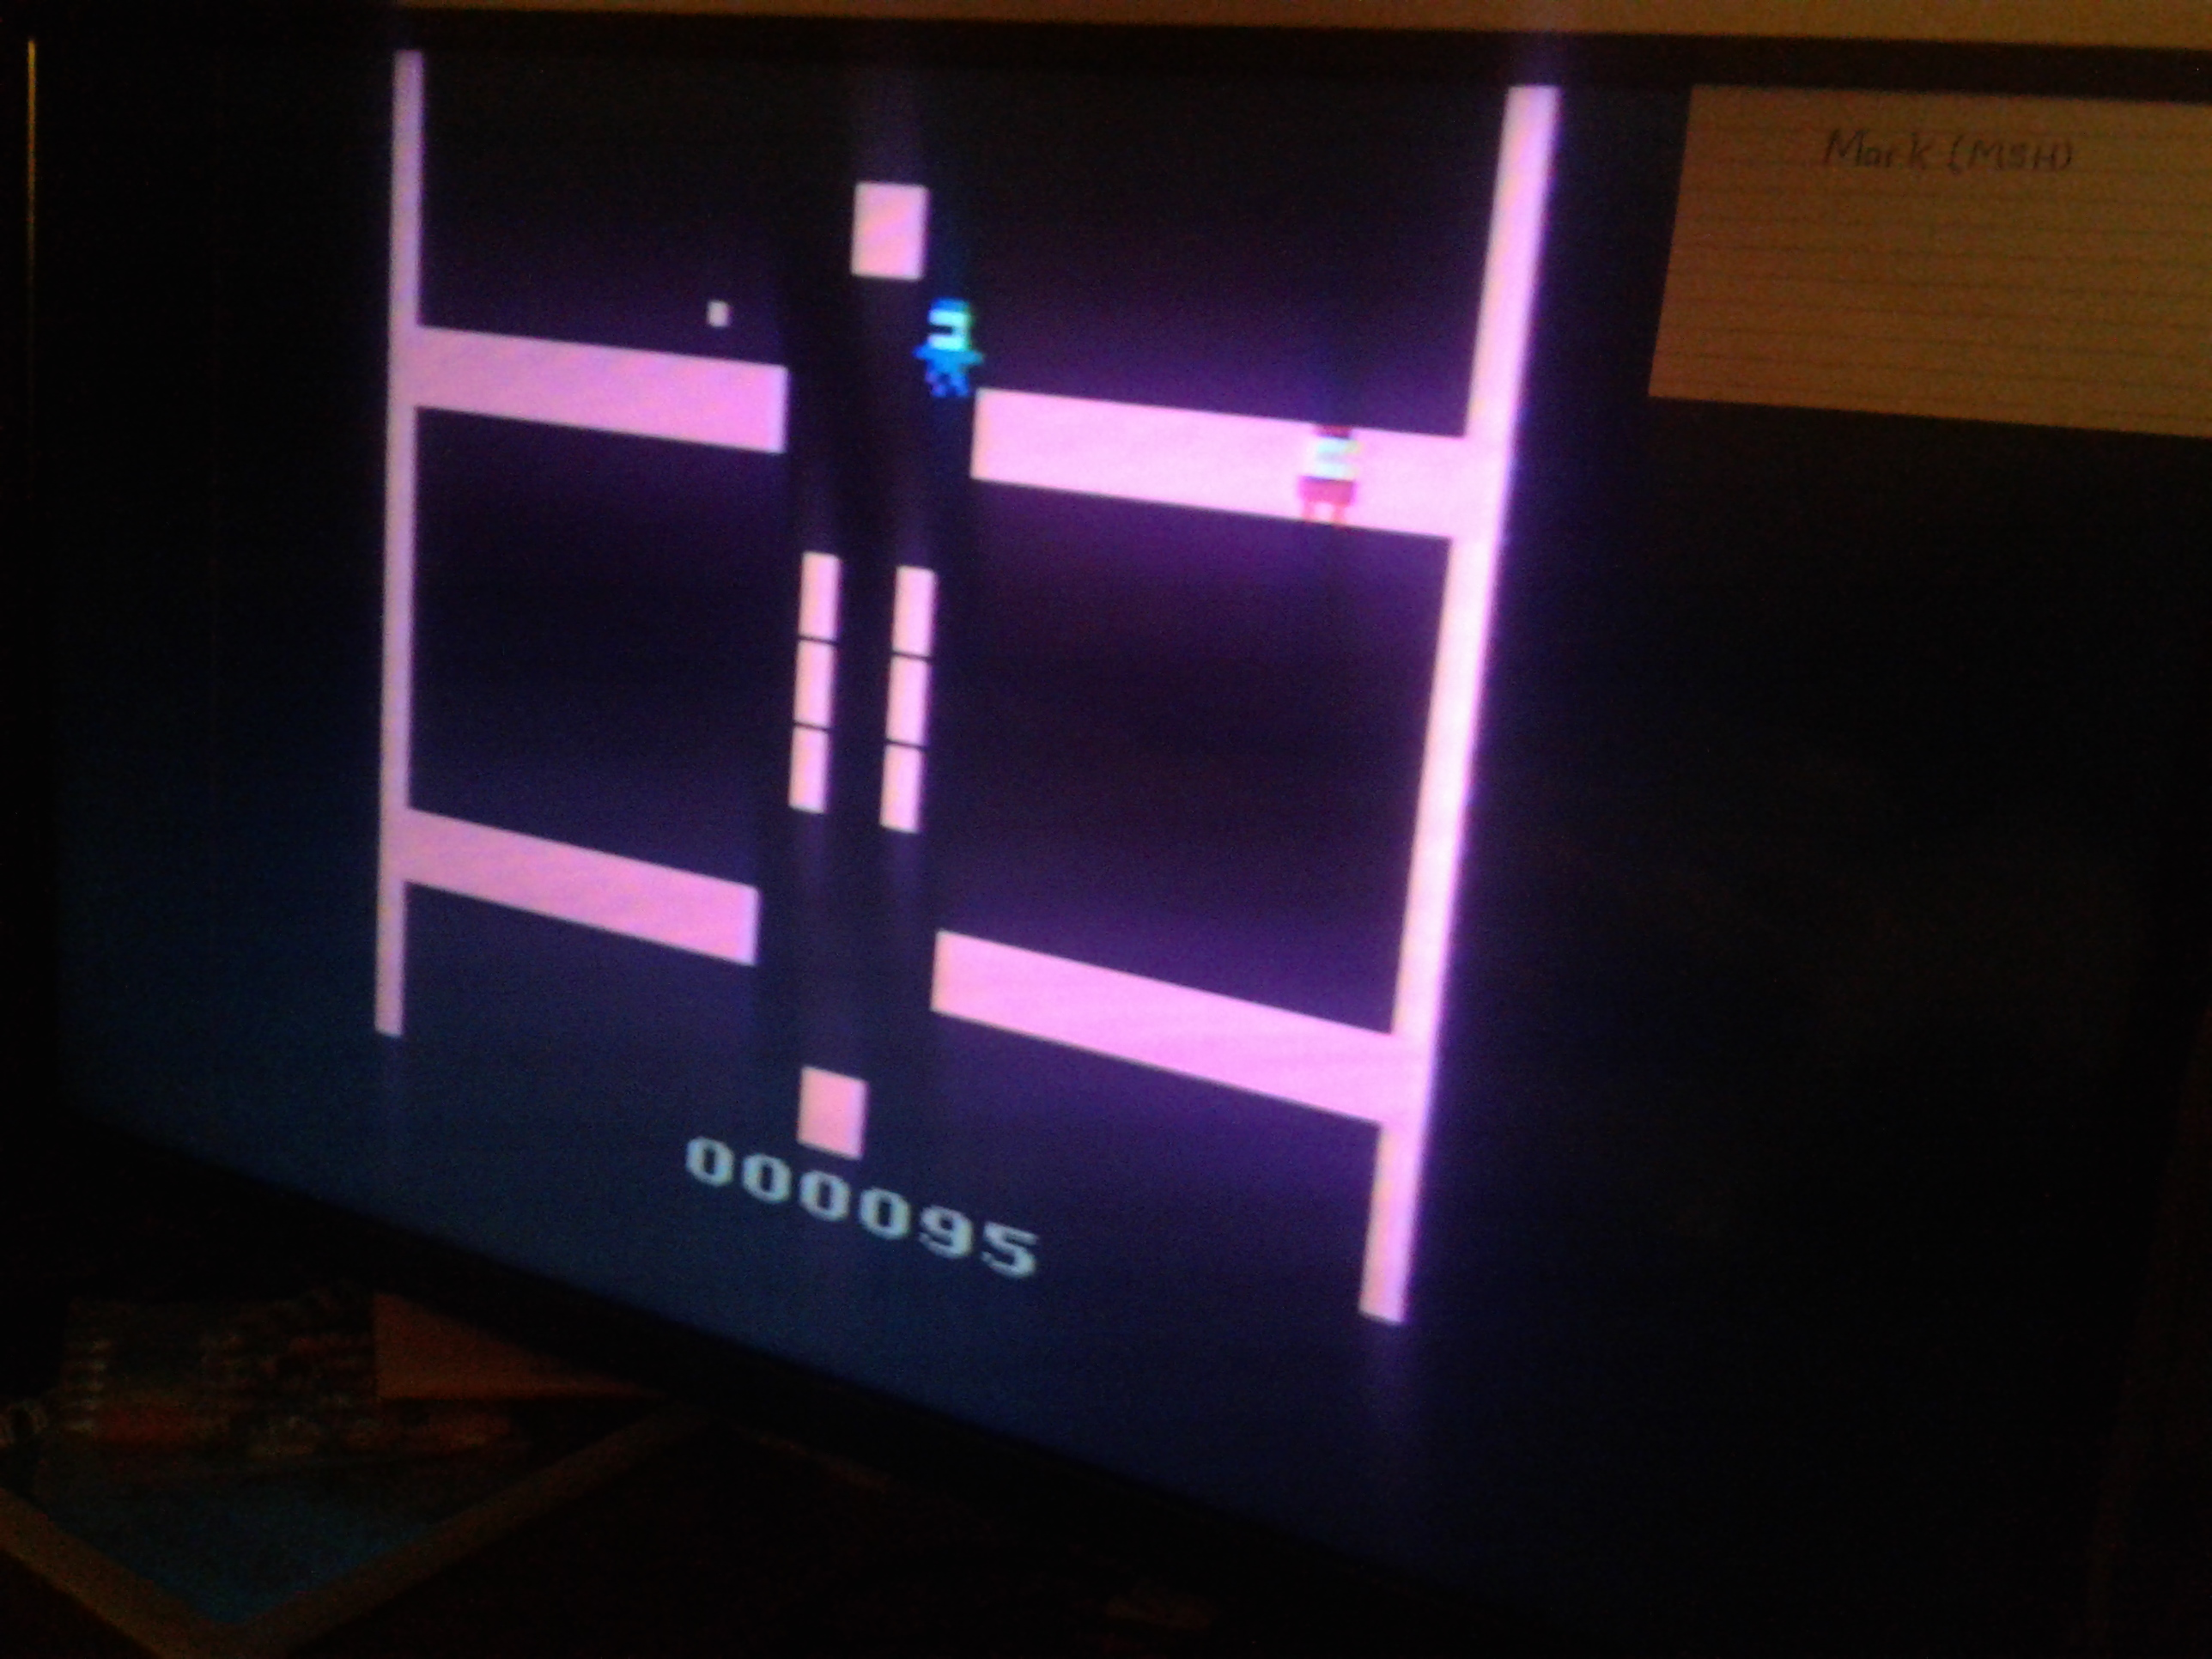 Mark: Piñata: Flipside (Atari 2600 Expert/A) 95 points on 2019-02-17 02:03:38